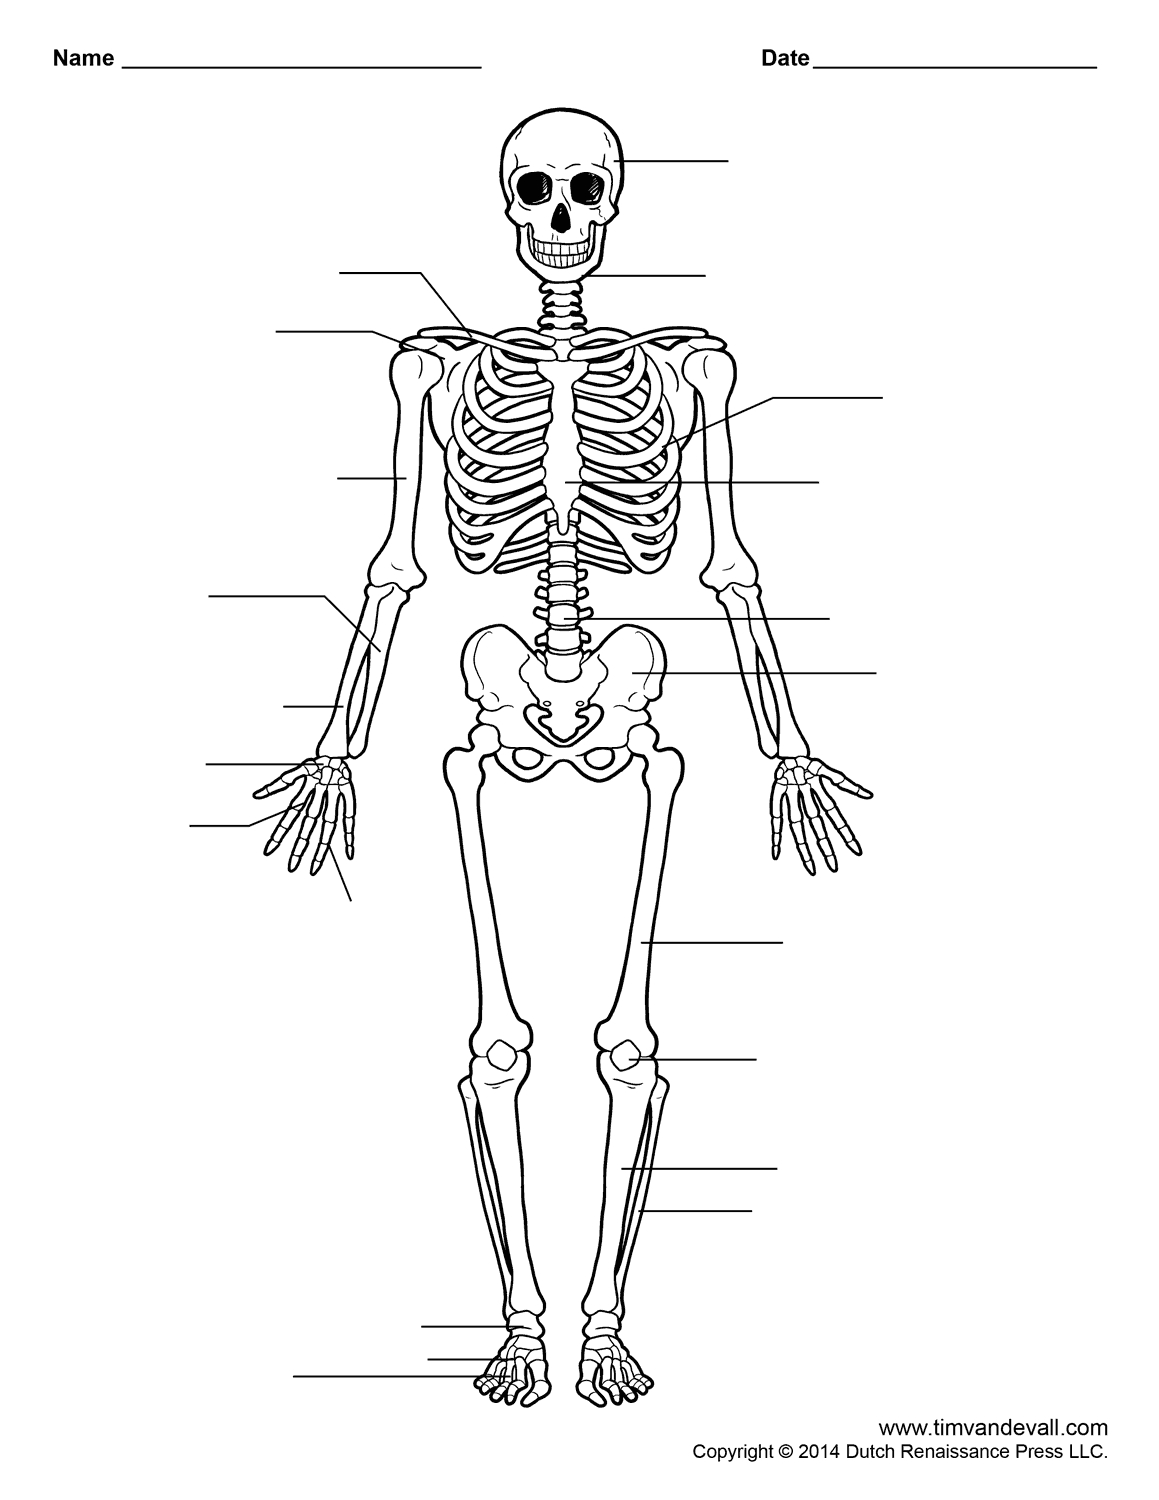 Free Printable Human Anatomy Worksheets